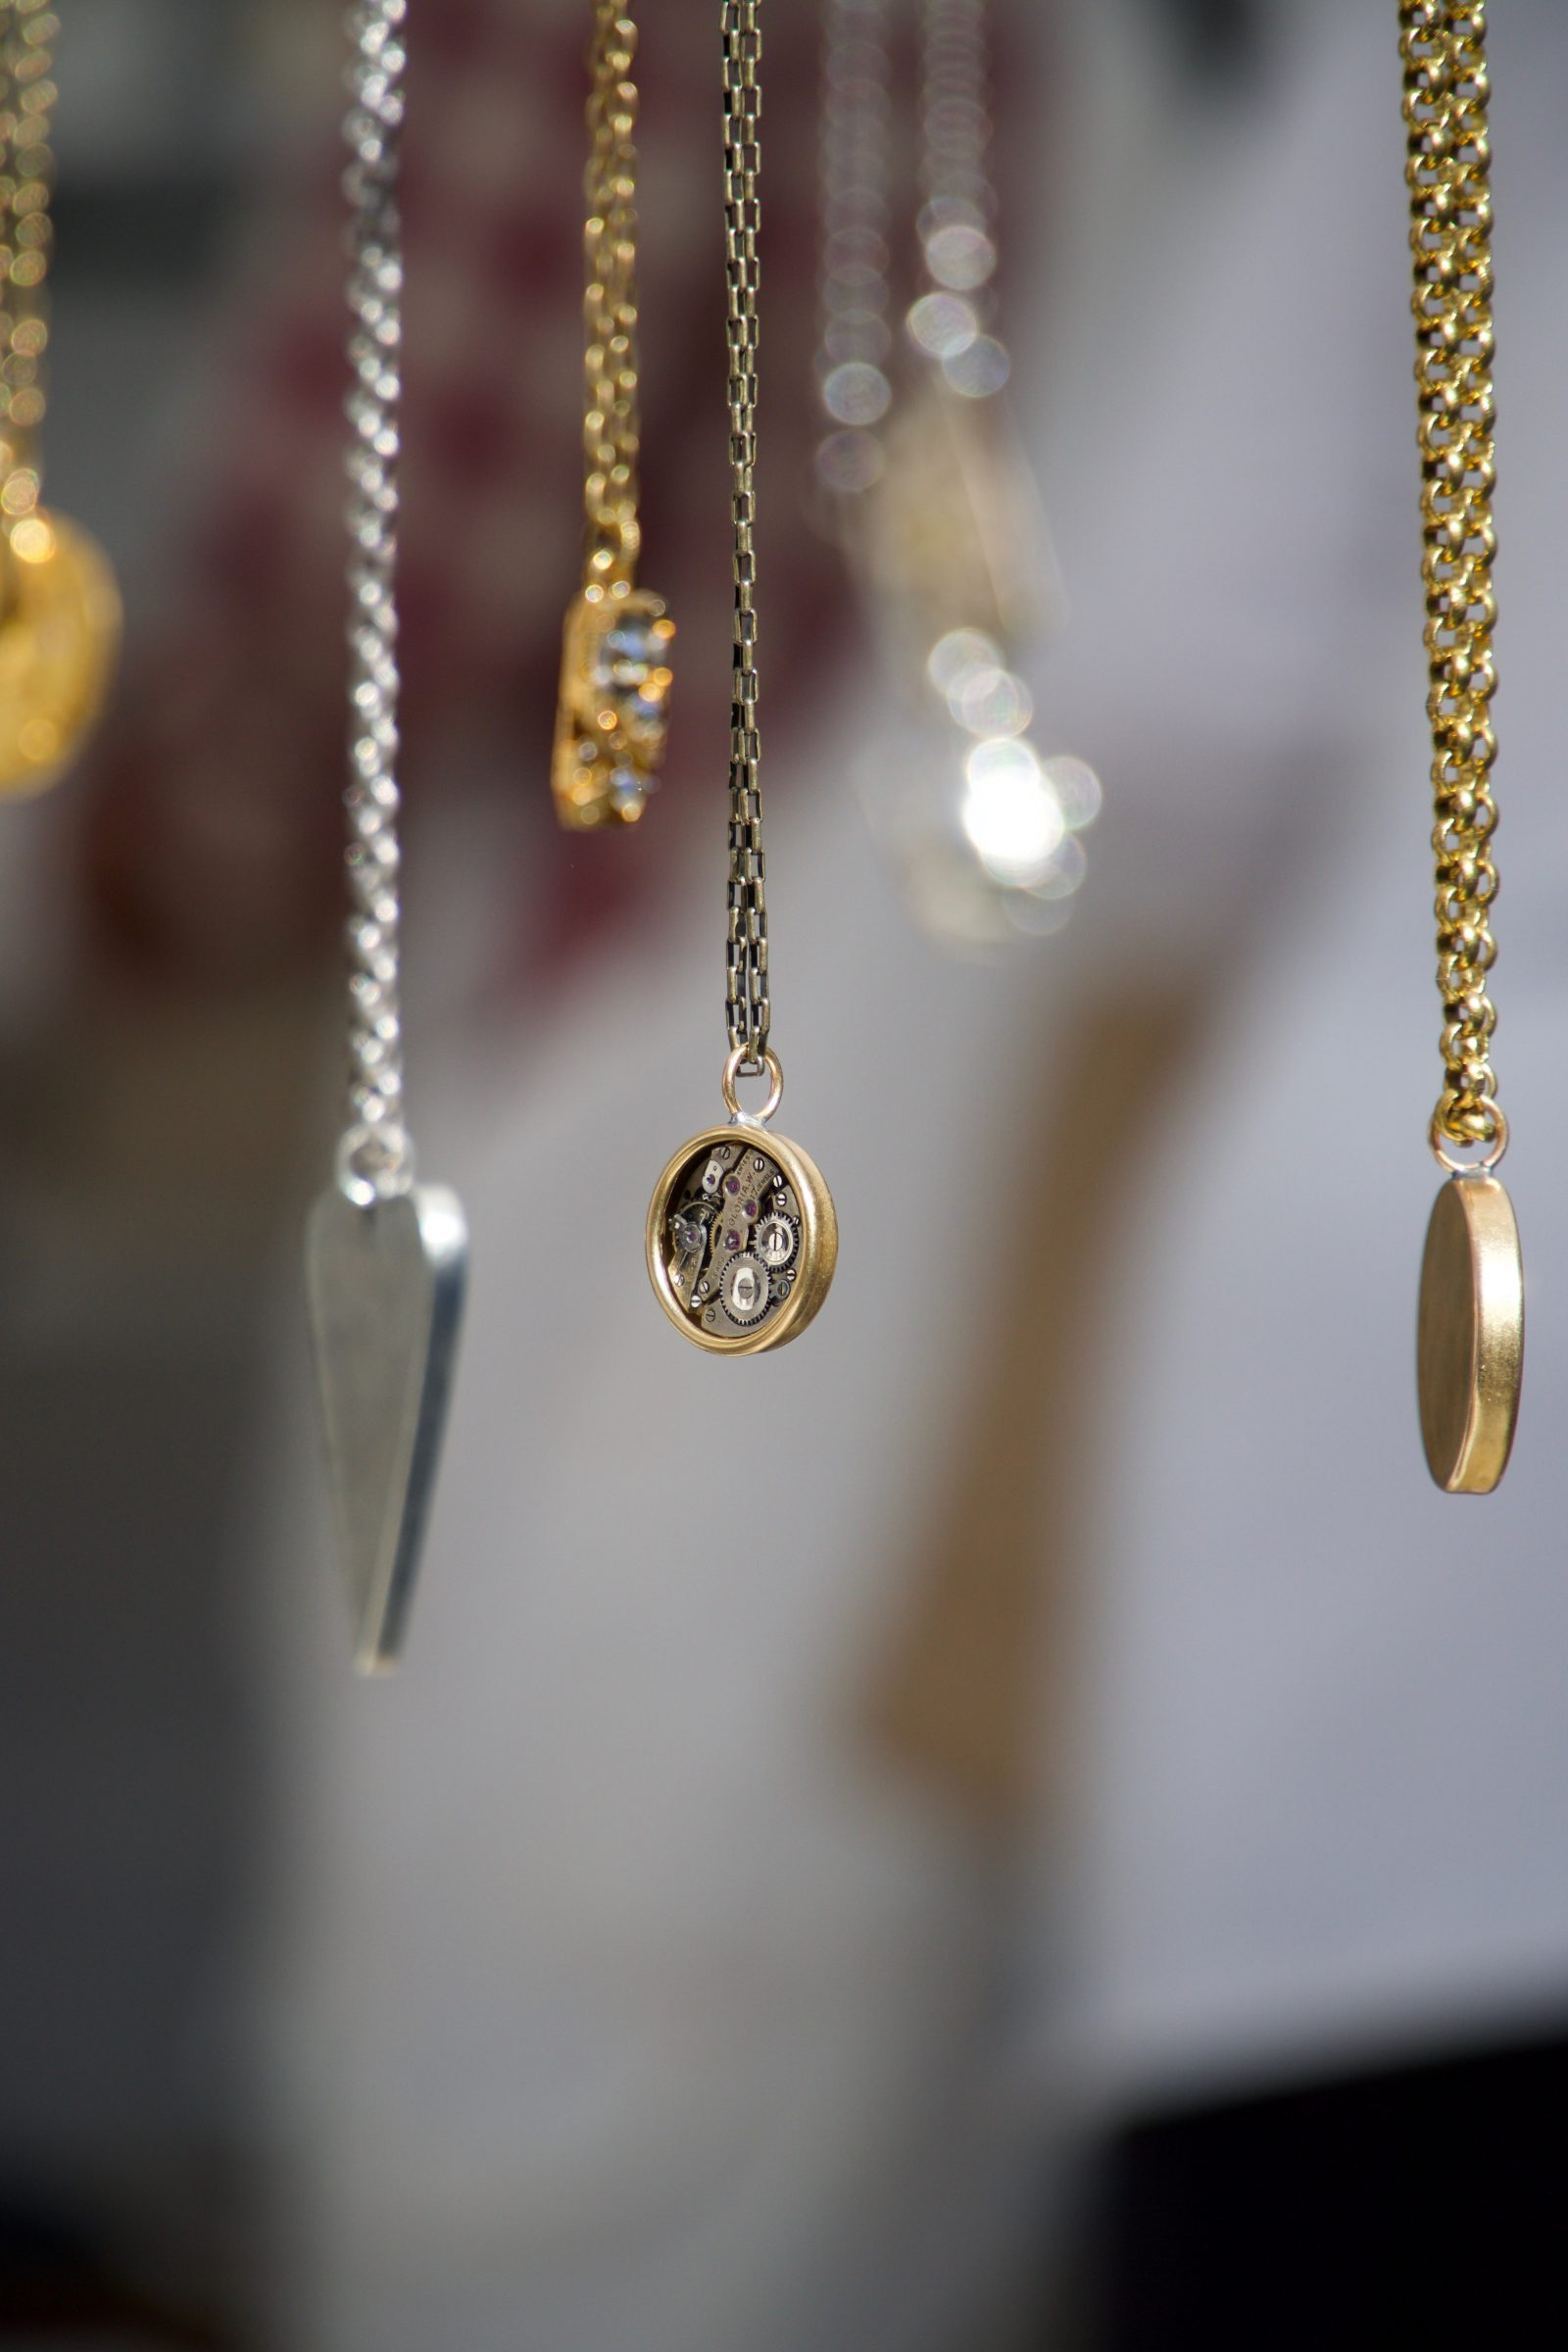 5 Reasons Why You Should Sell Your Old Jewellery